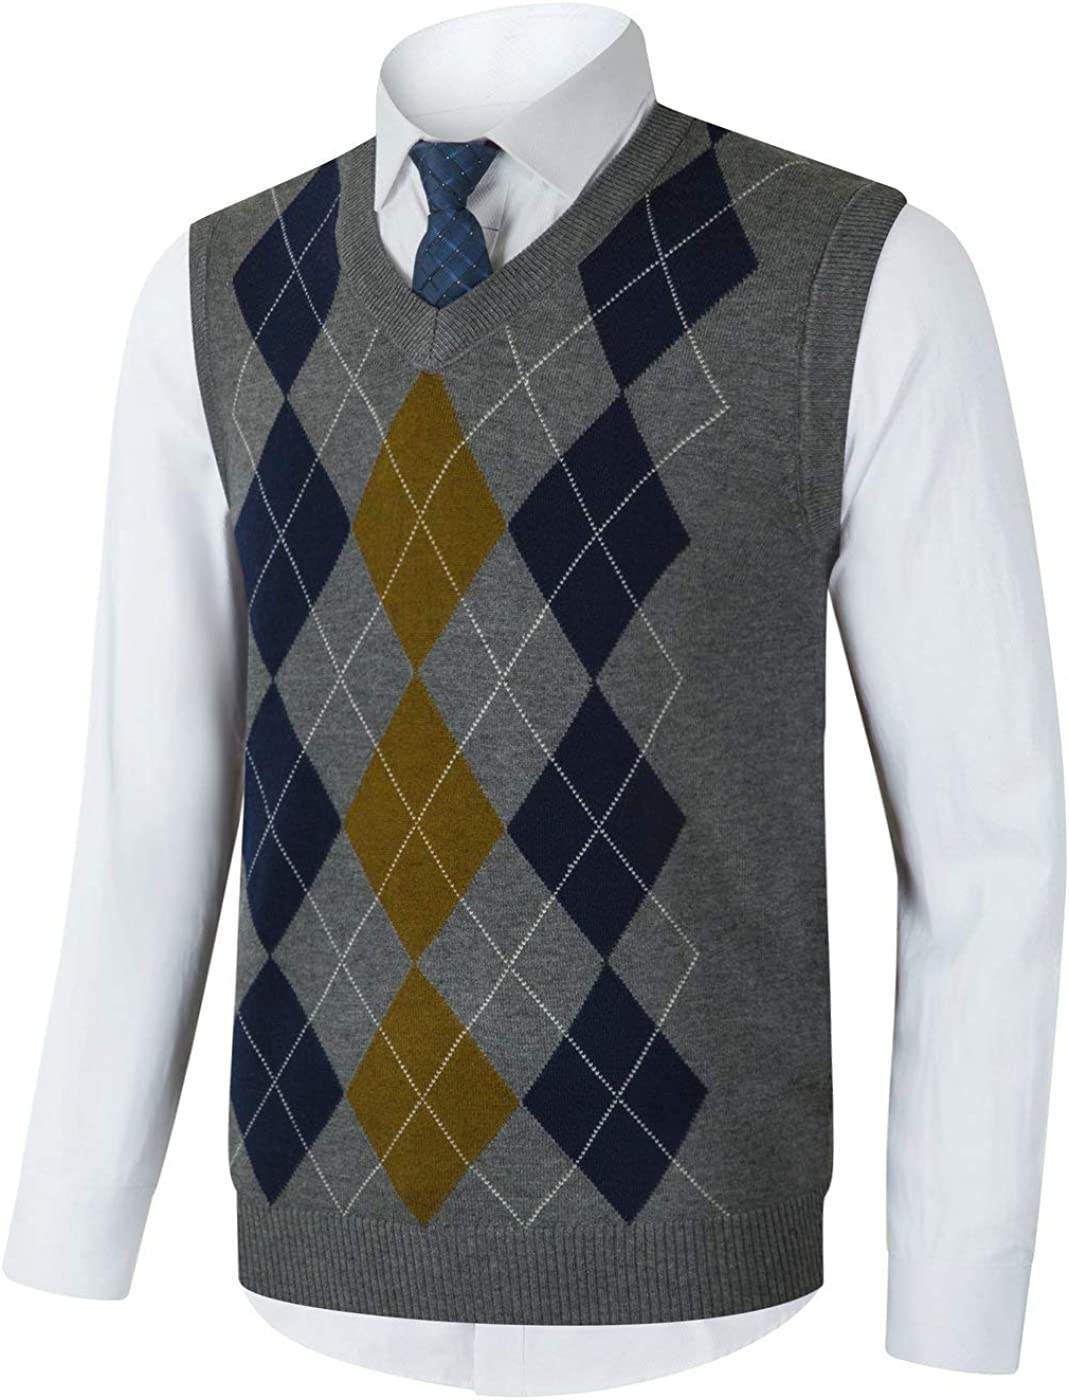 Dallas Mall Yingqible Mens Casual Knitwear V-Neck Slim Spring new work one after another Fit Sleeveless Argyle